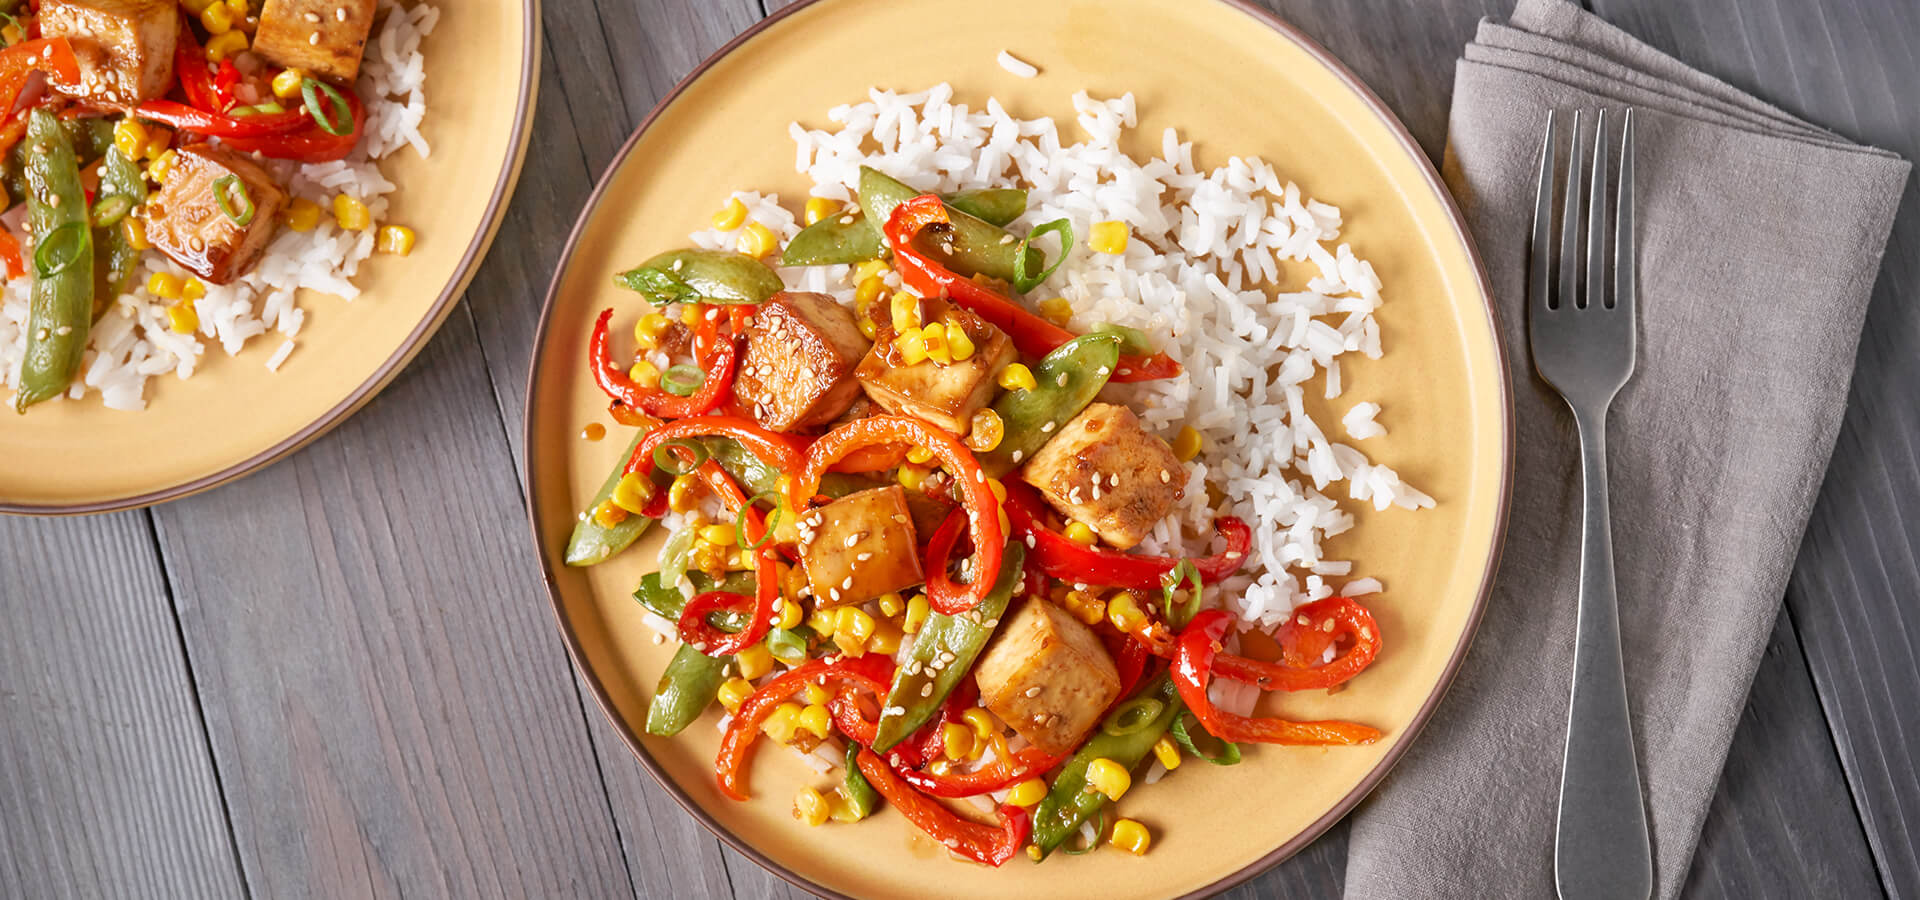 Sheet Pan Teriyaki Tofu Stir Fry